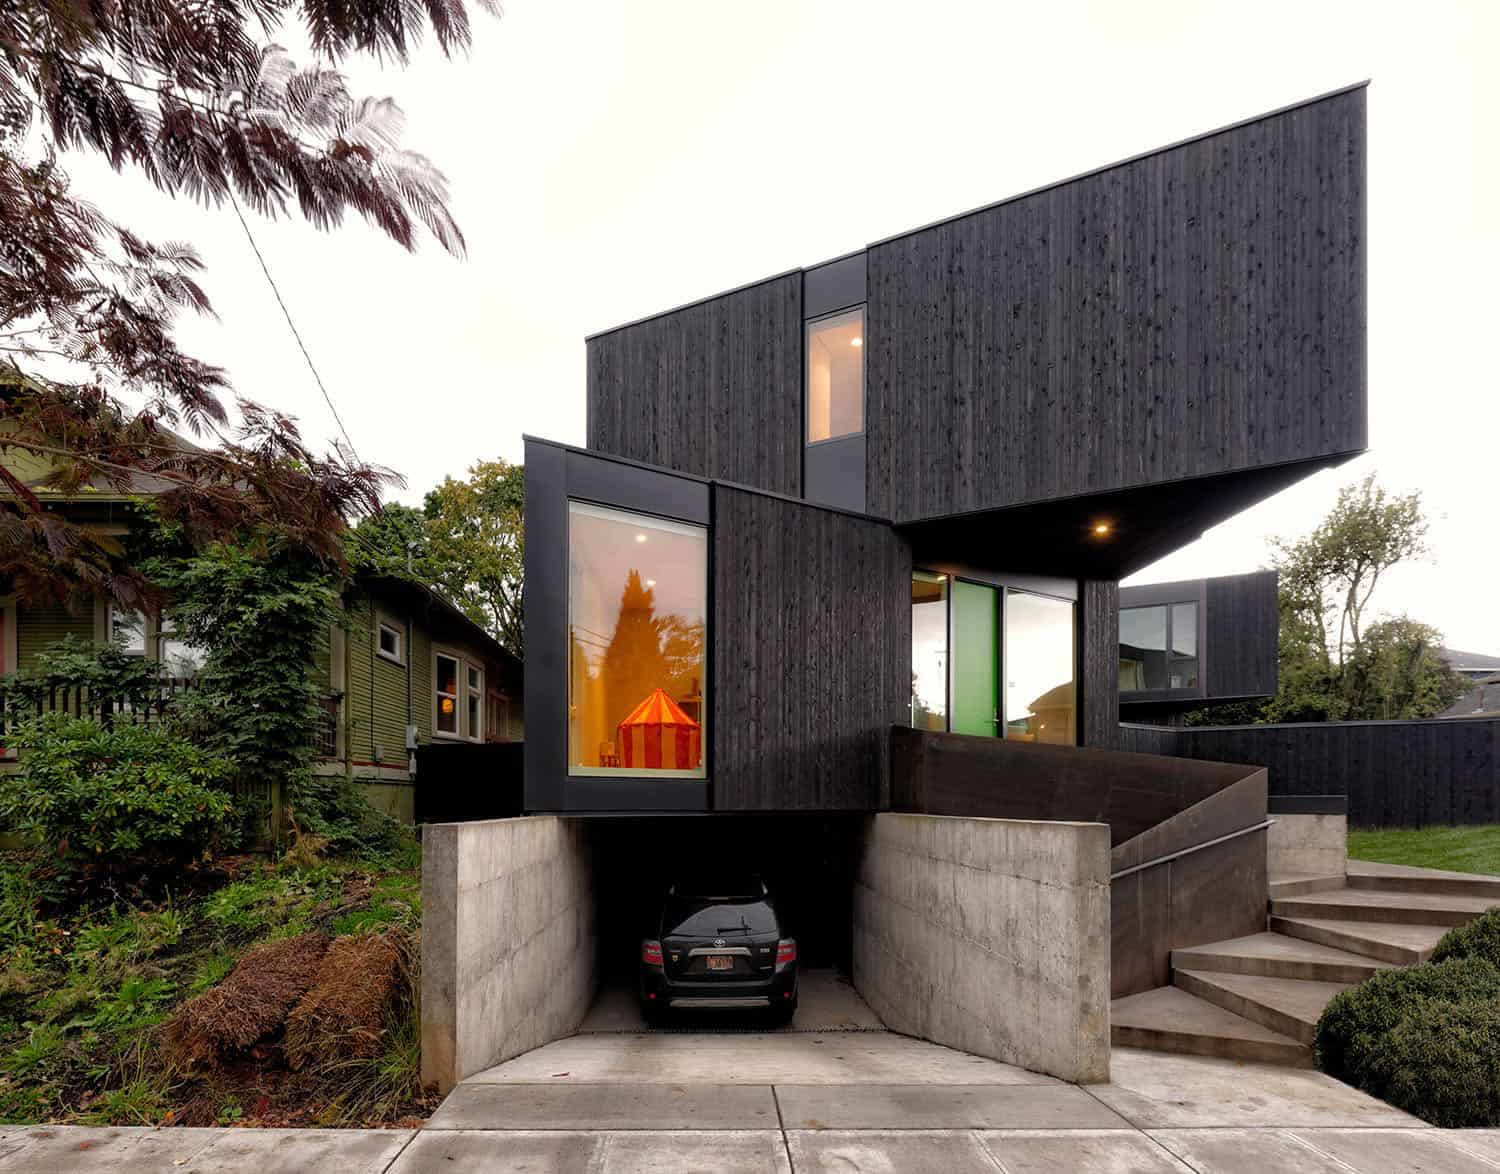 Modern prefabricated house with a blackened cedar facade in Oregon